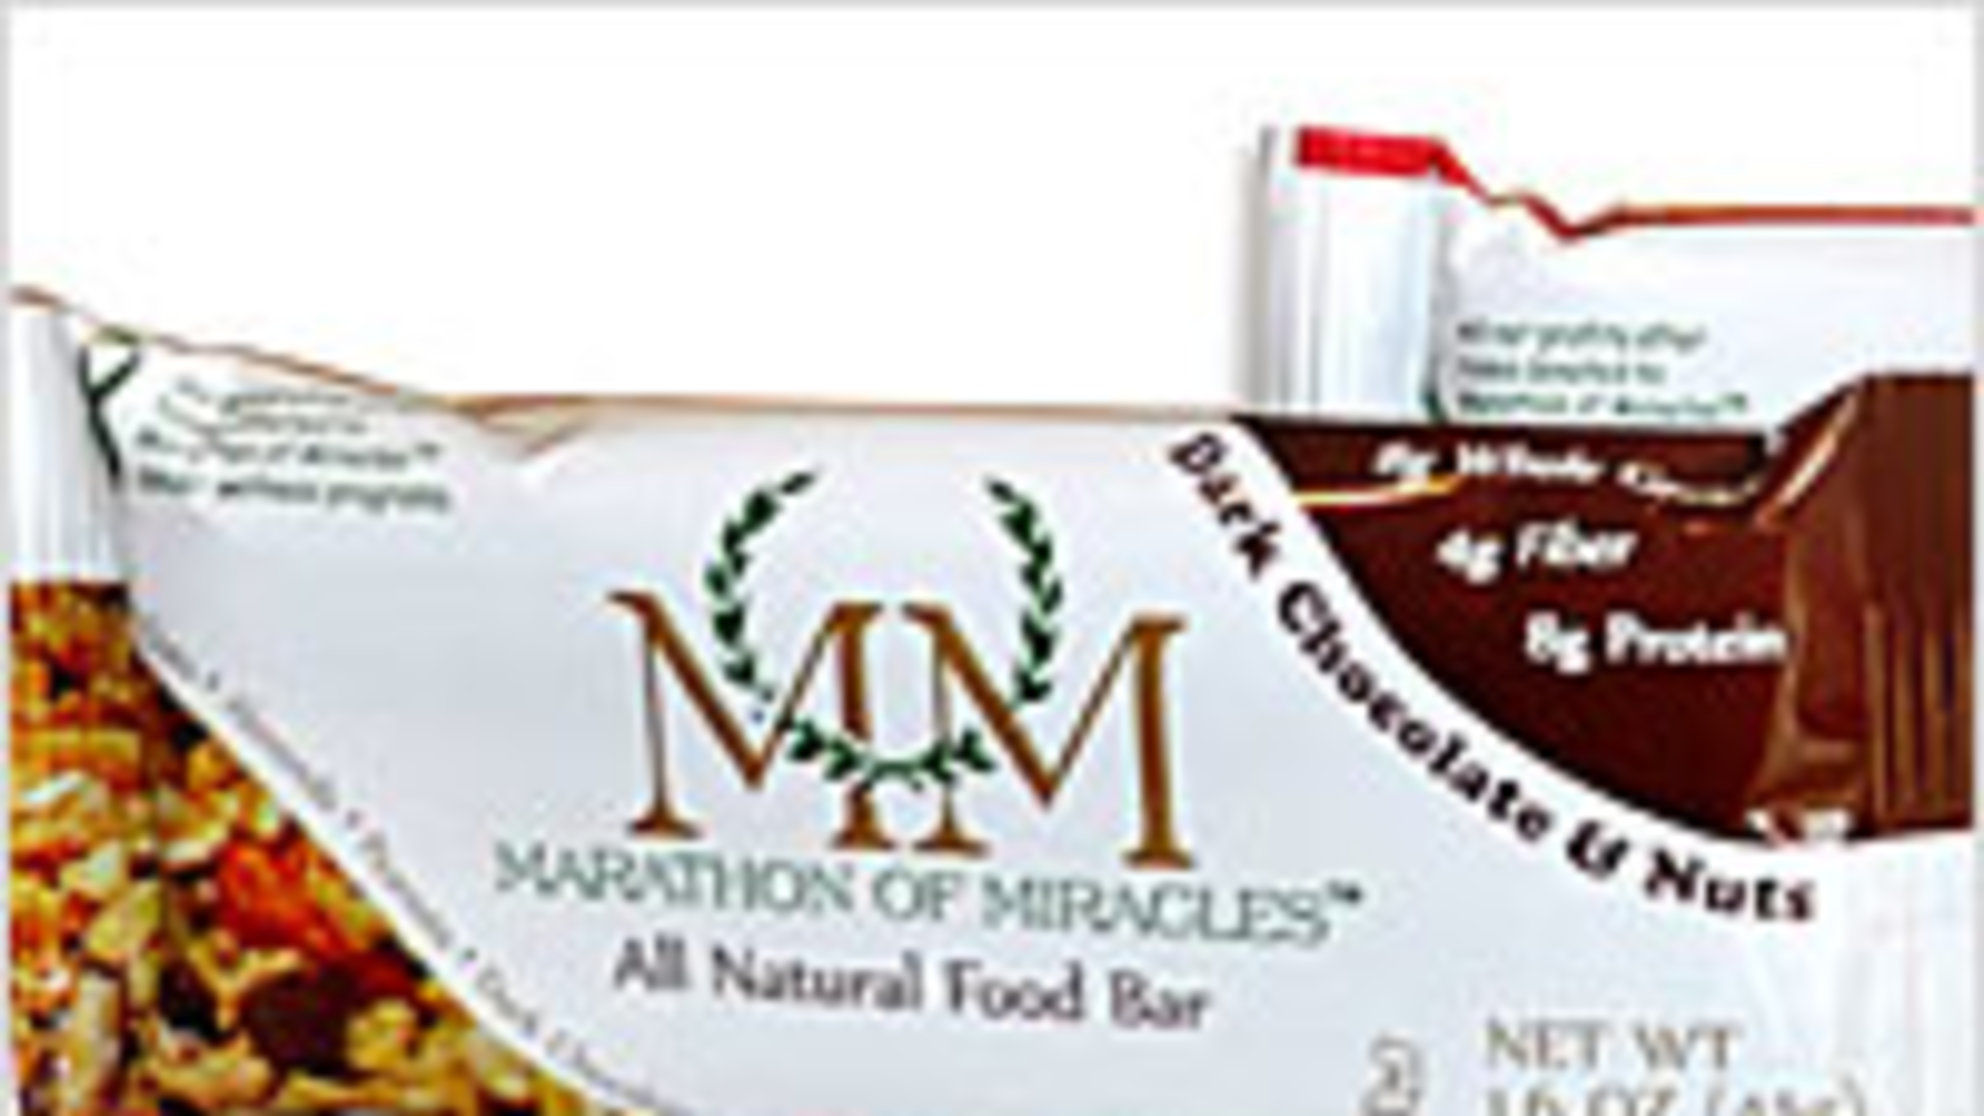 Foodie Friday: Marathon of Miracles Bars